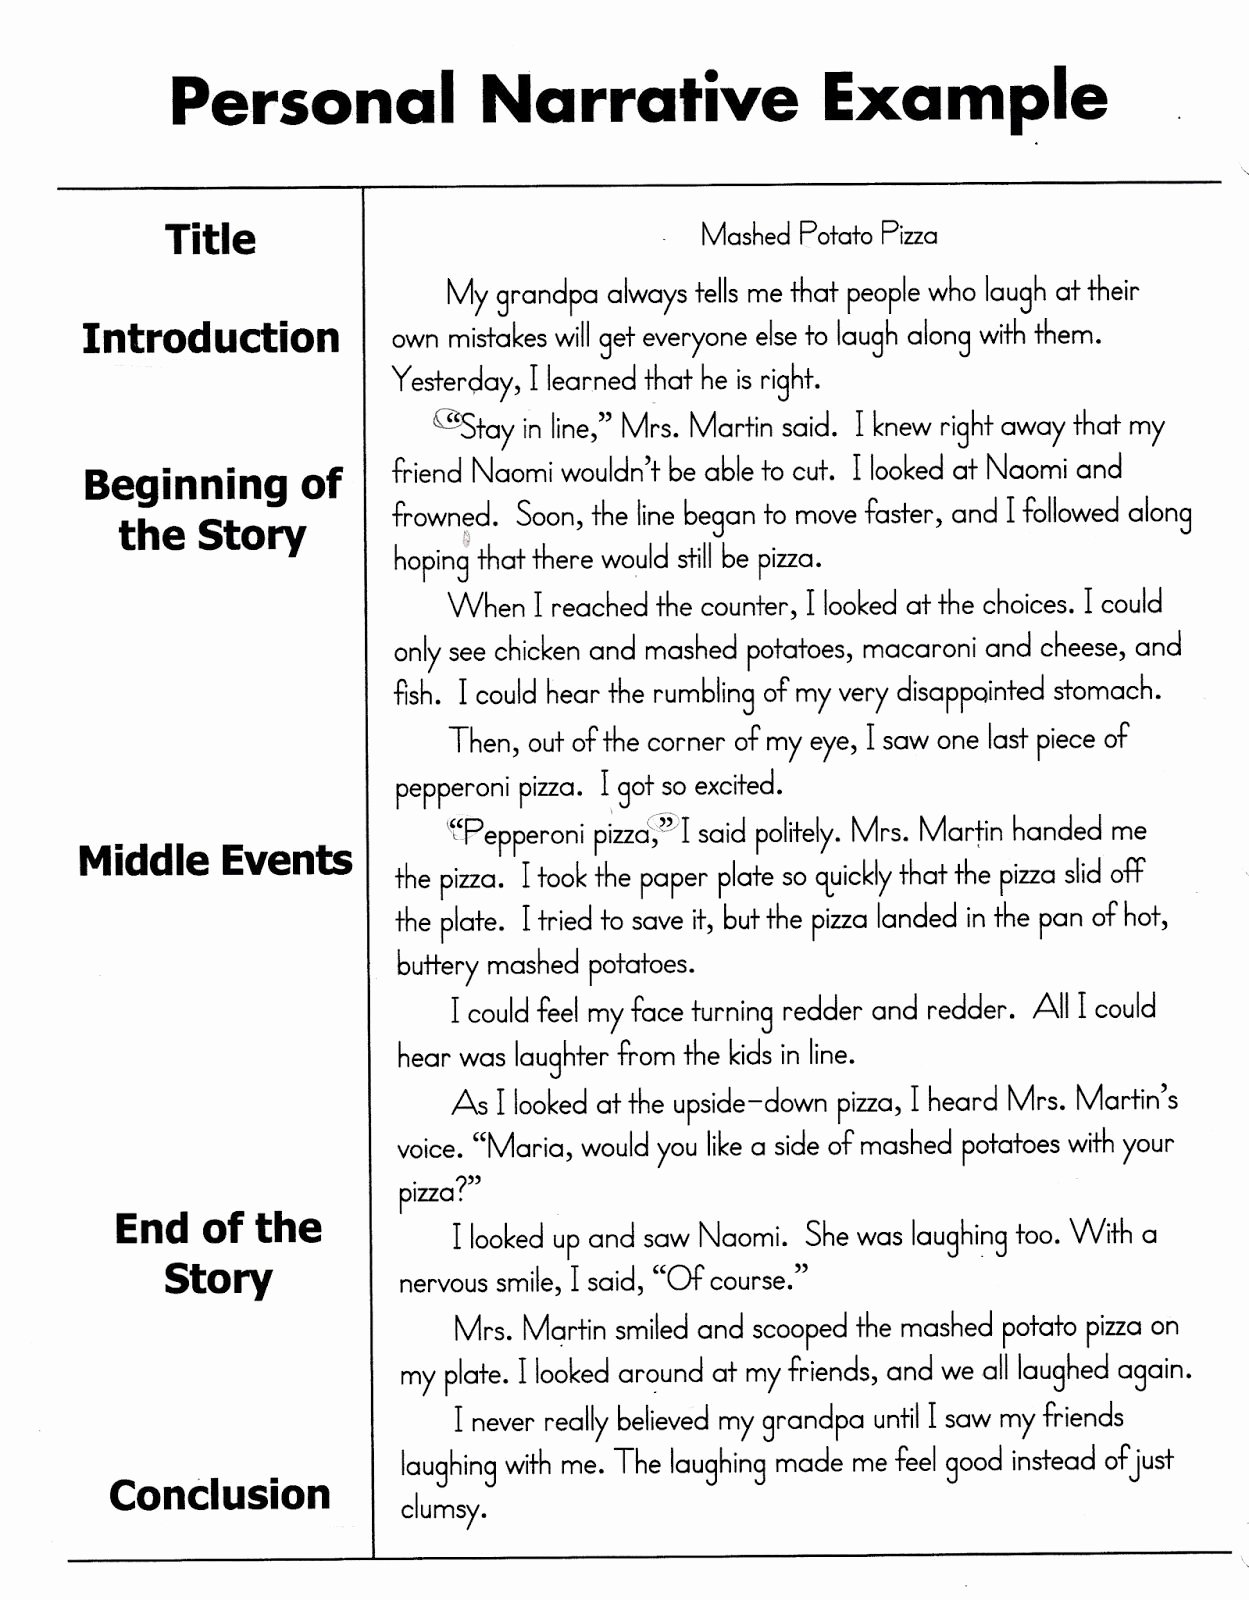 Personal Narratives Examples College Unique Video Example and Personal Narrative Essay Sample